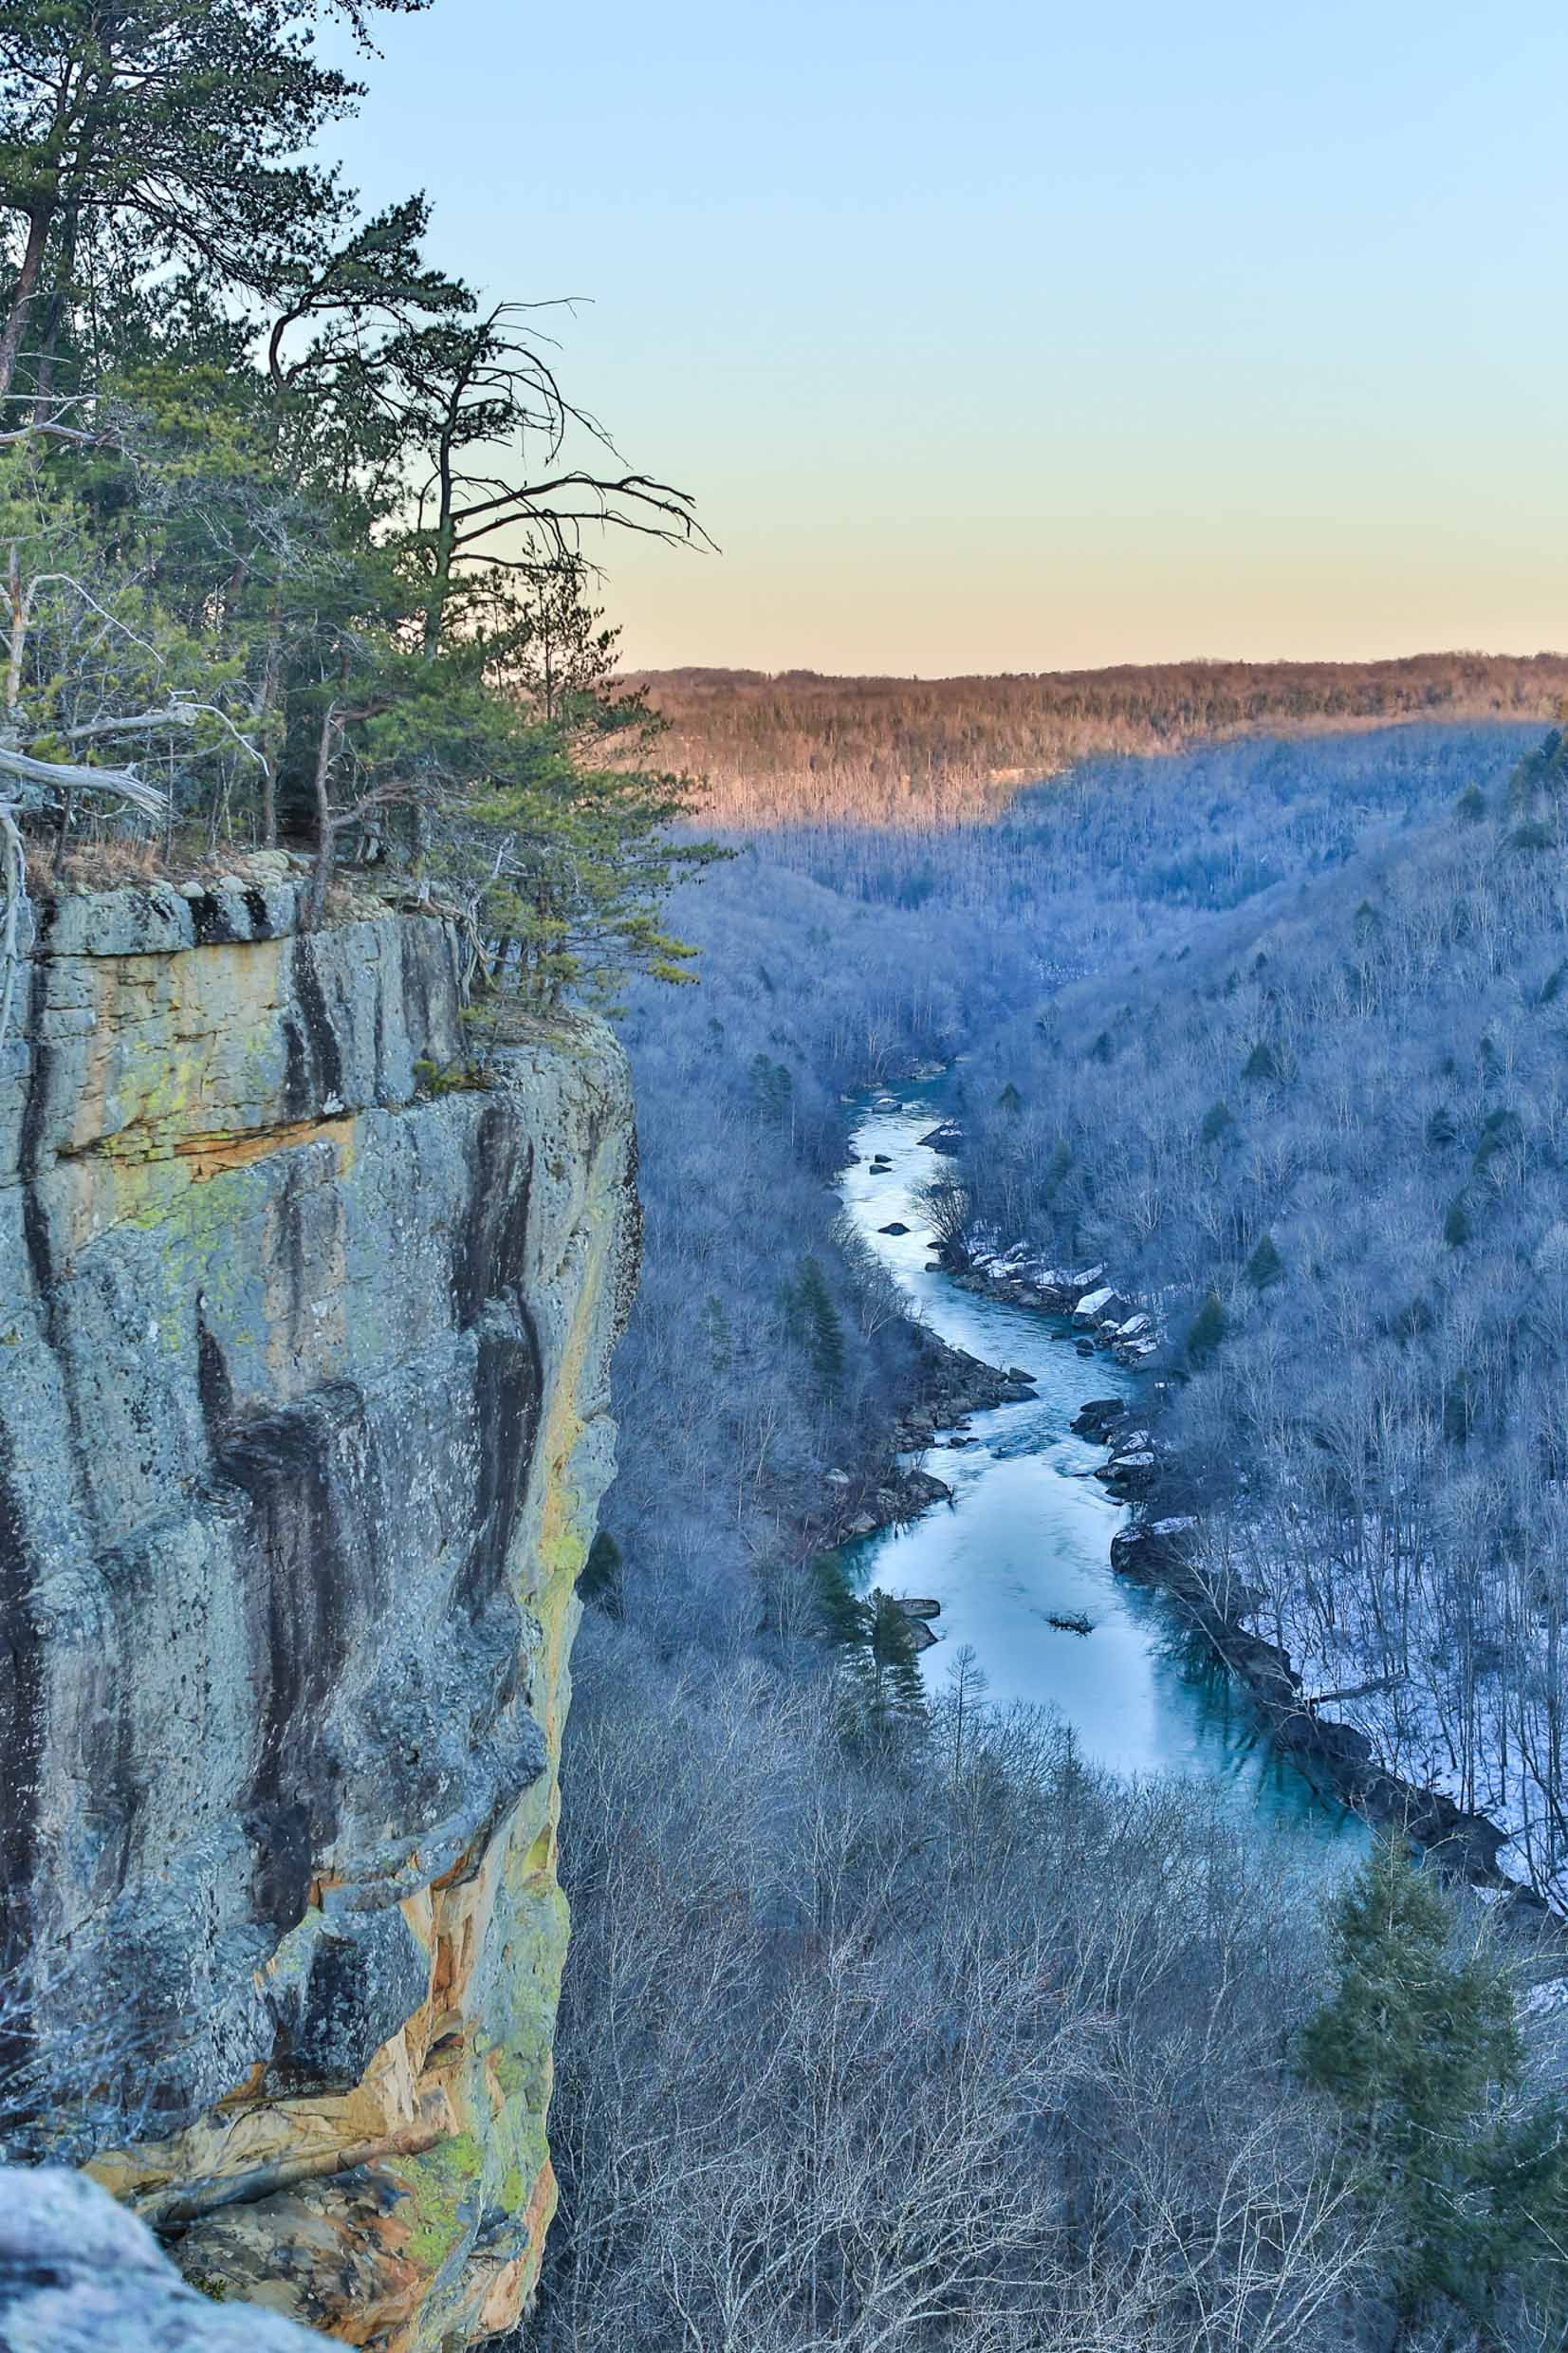 Angel Falls Overlook, Big South Fork National River & Recreation Area, TN